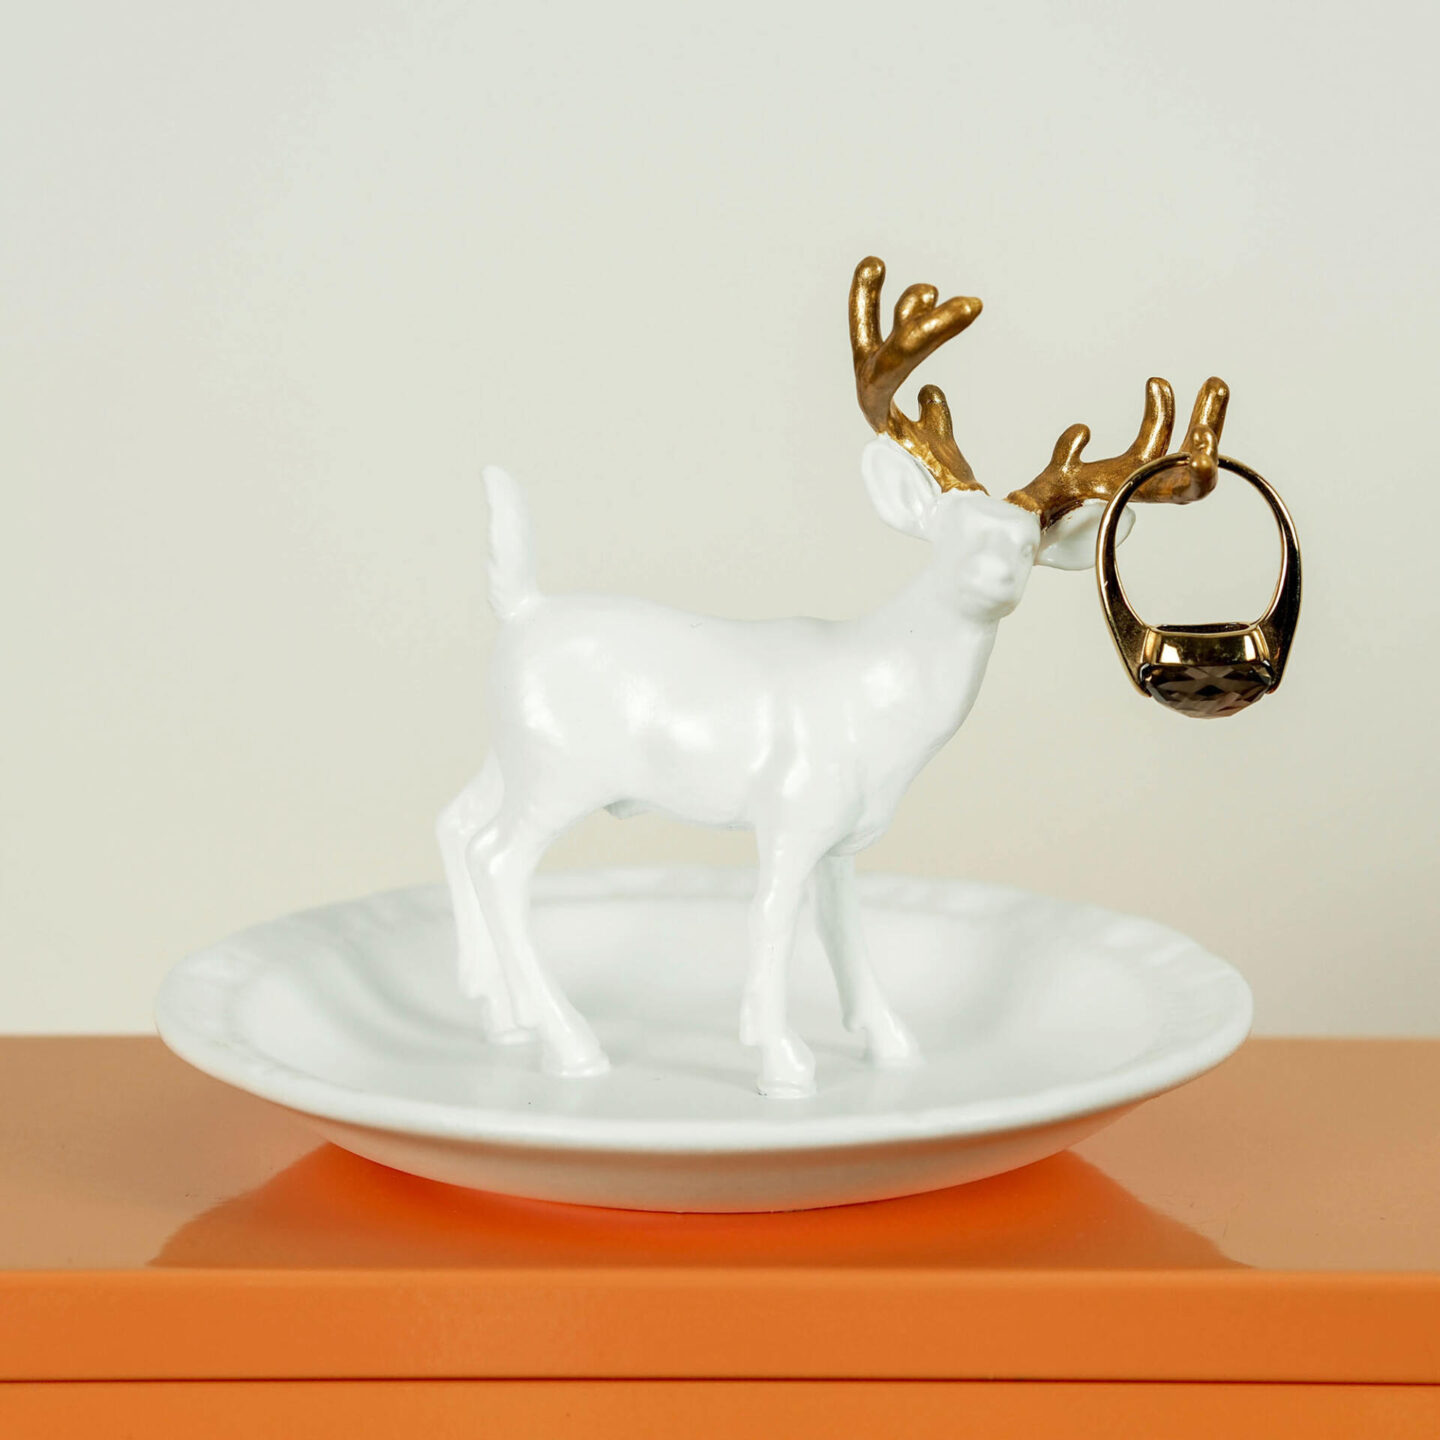 Not Lamb Home: Bold, kitsch upcycled homewares, vintage and decor | White and Handpainted Gold Ring Tray With Deer/Stag